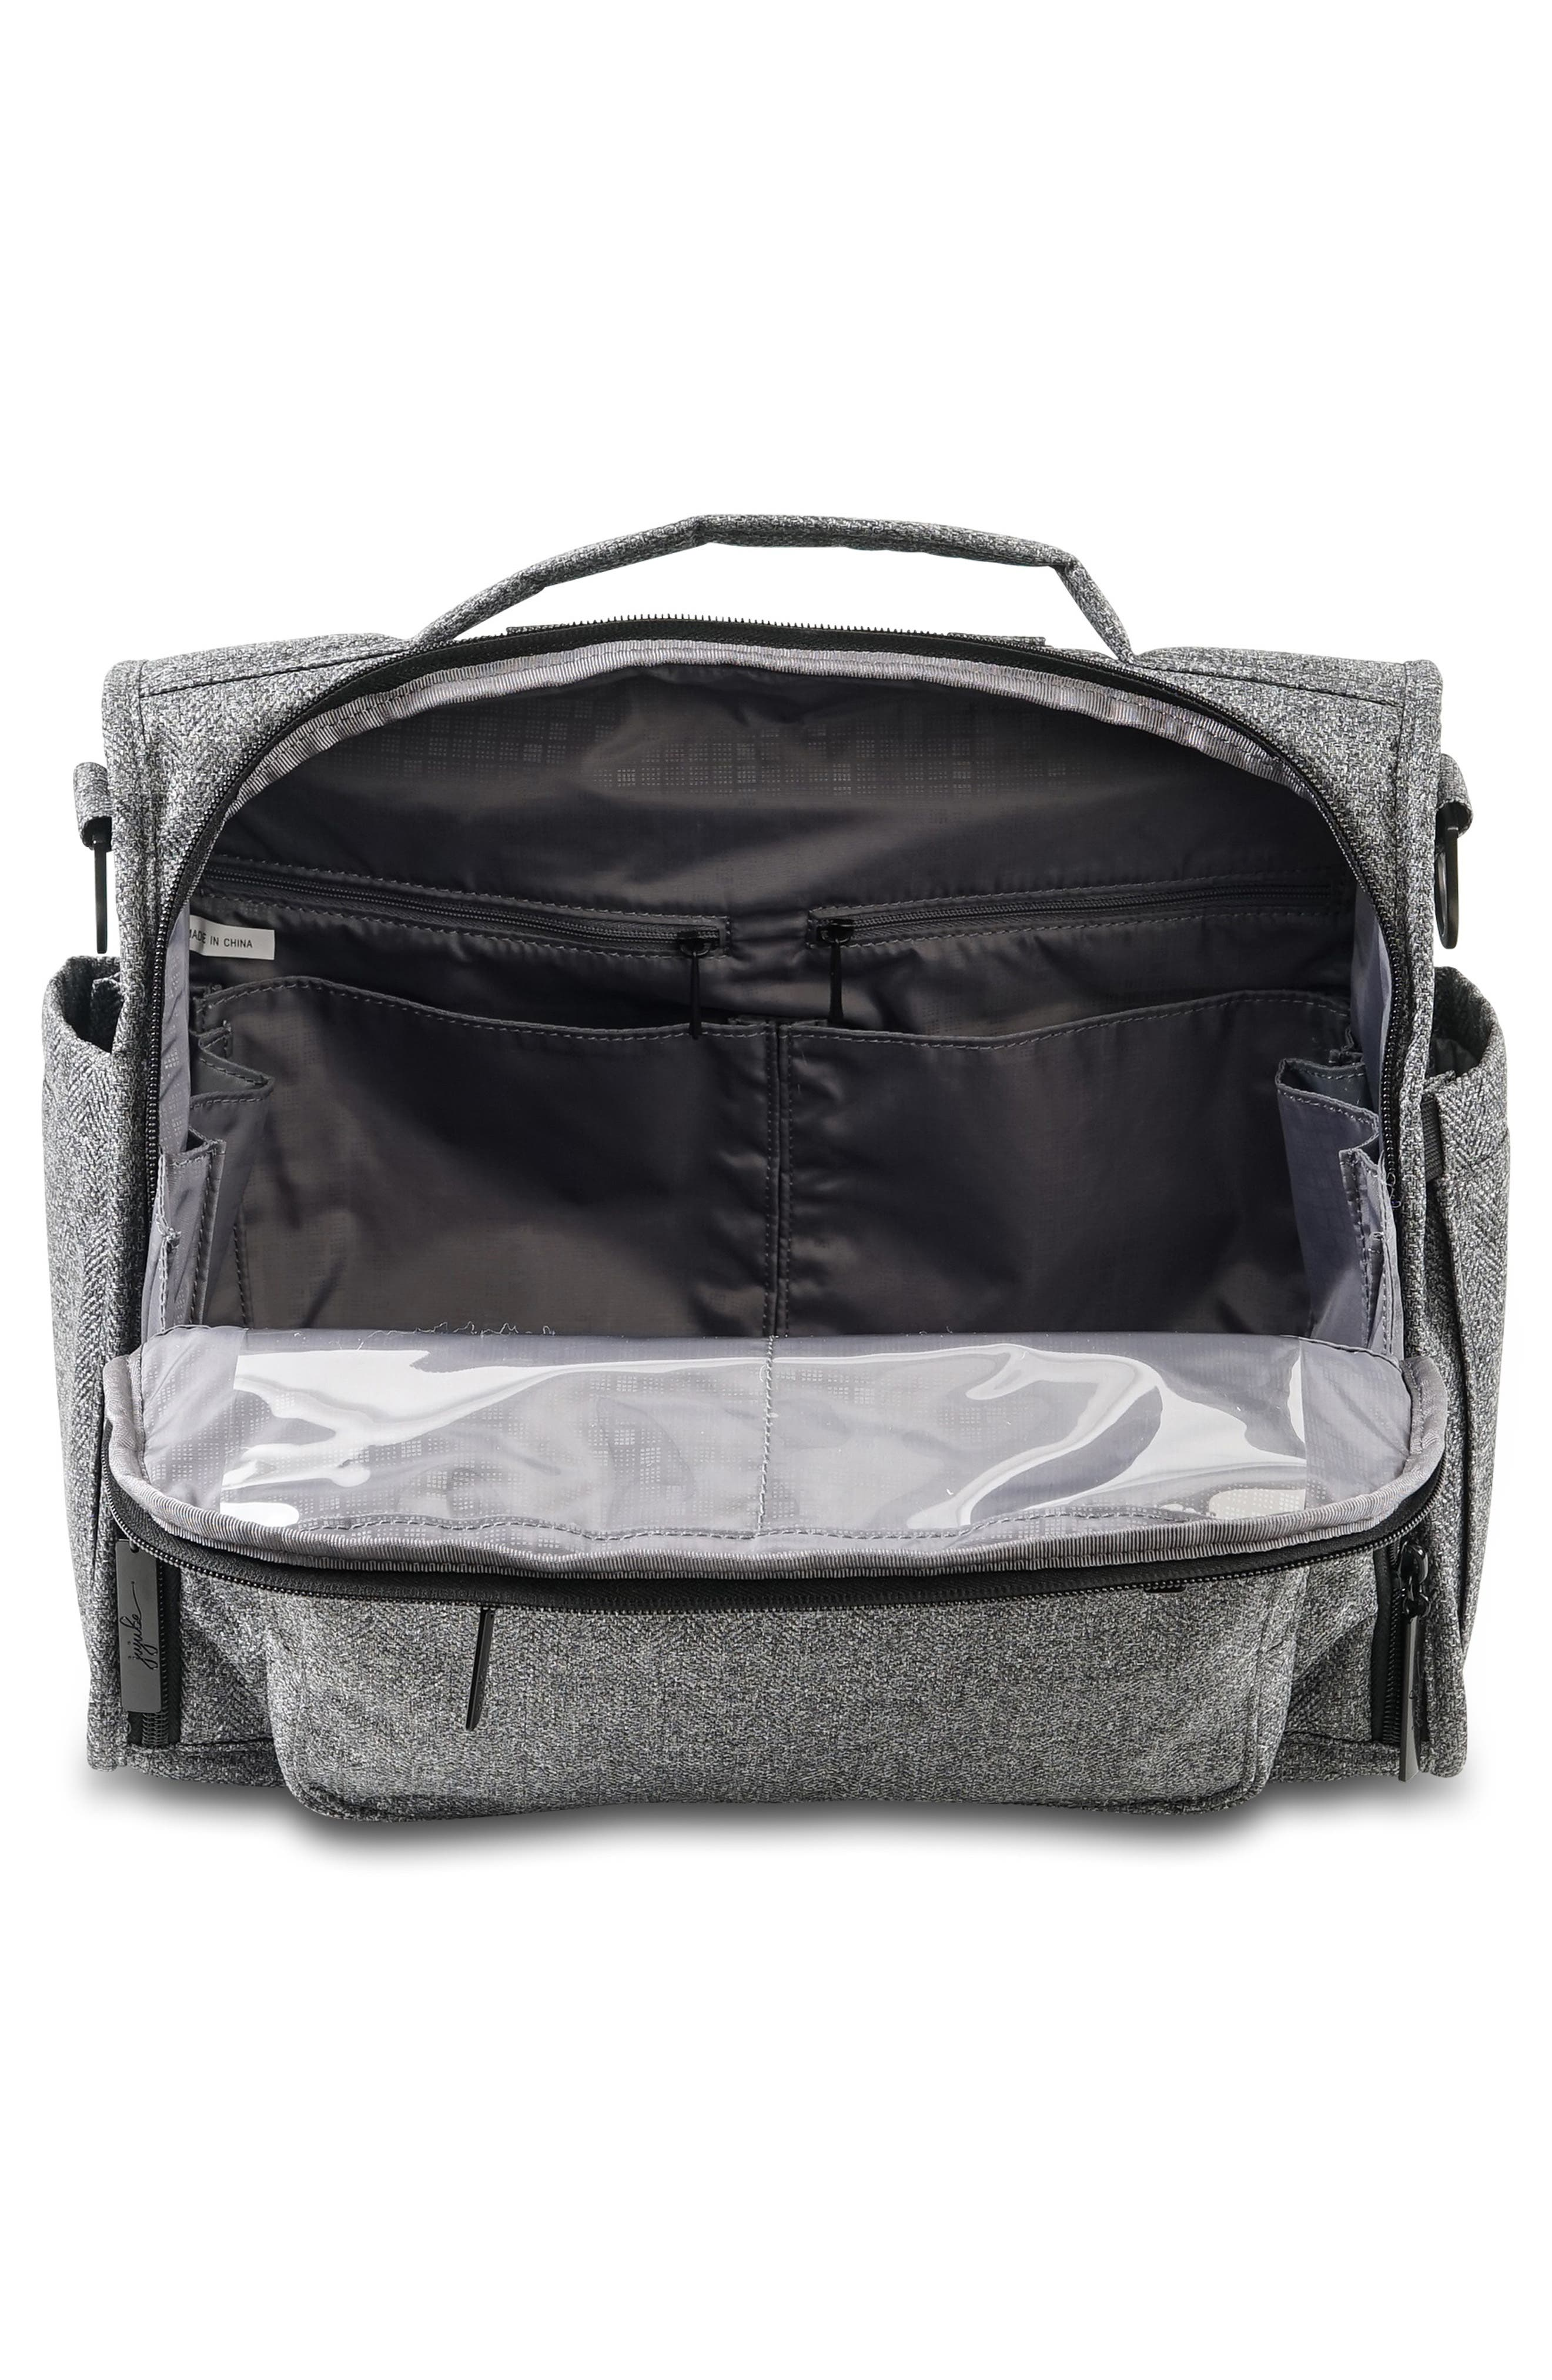 'BFF - Onyx Collection' Diaper Bag,                             Alternate thumbnail 3, color,                             GRAY MATTER